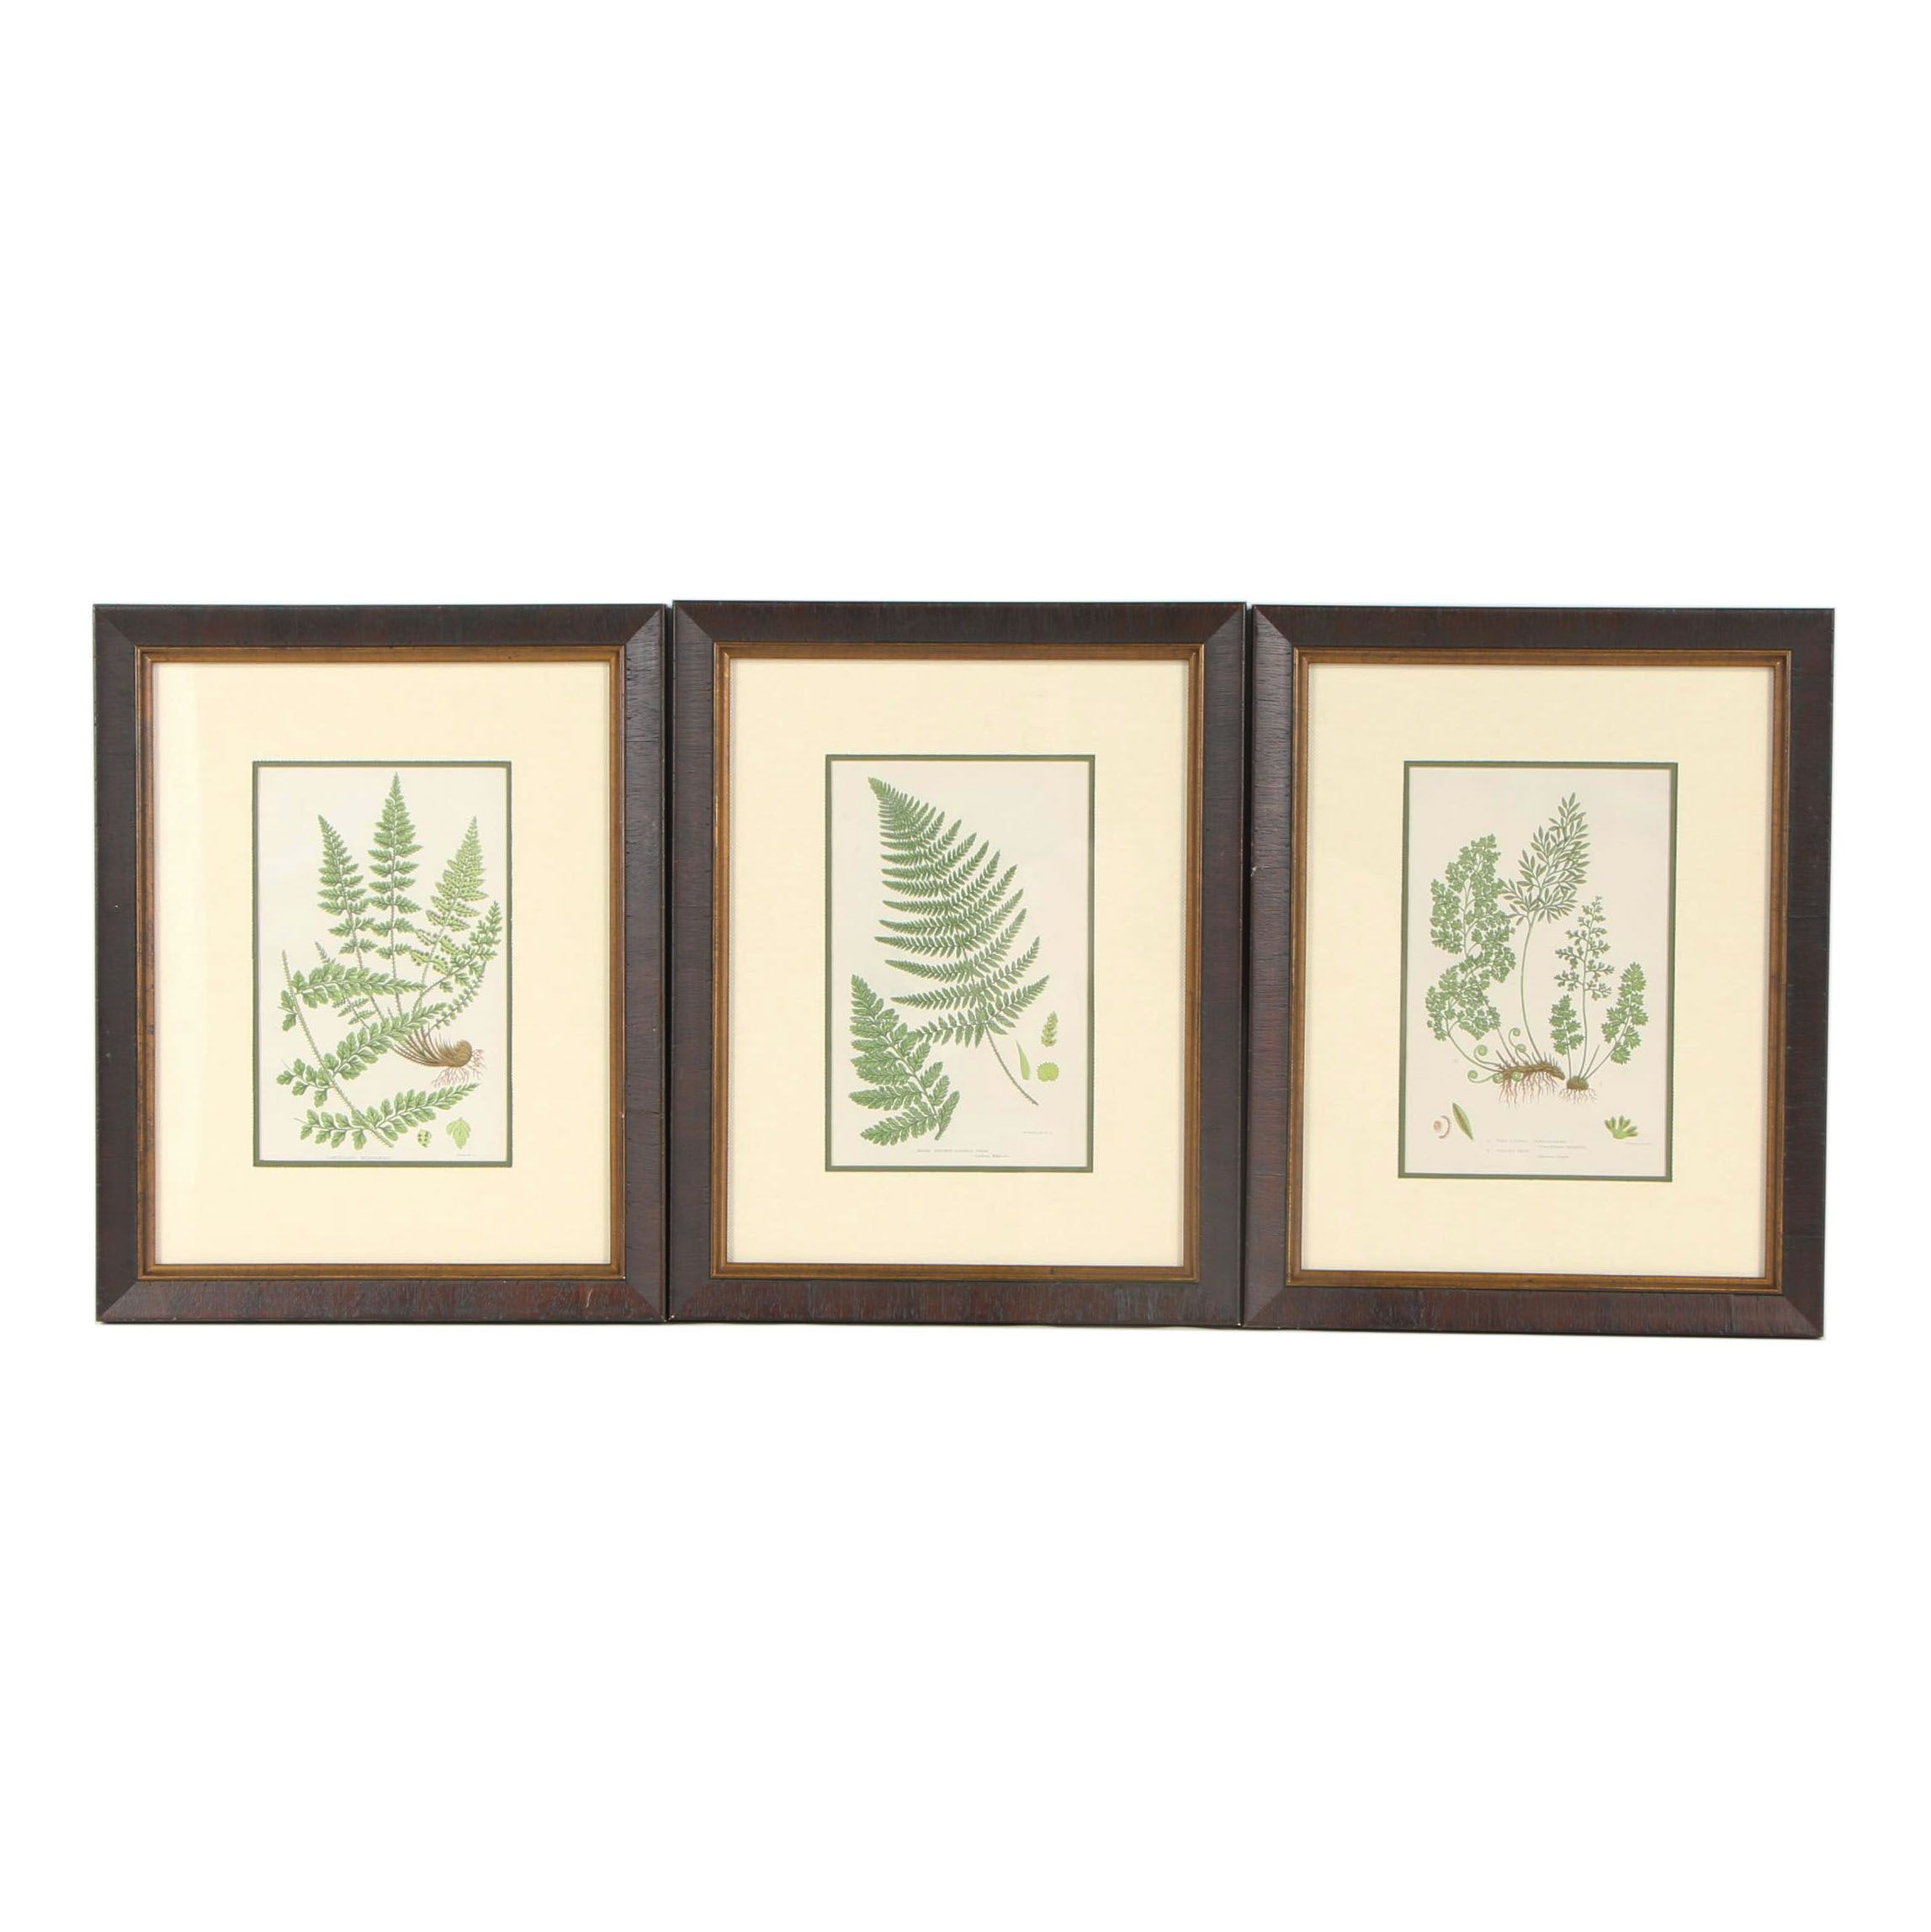 Botanical Lithograph Studies after Anne Pratt and William Dickes